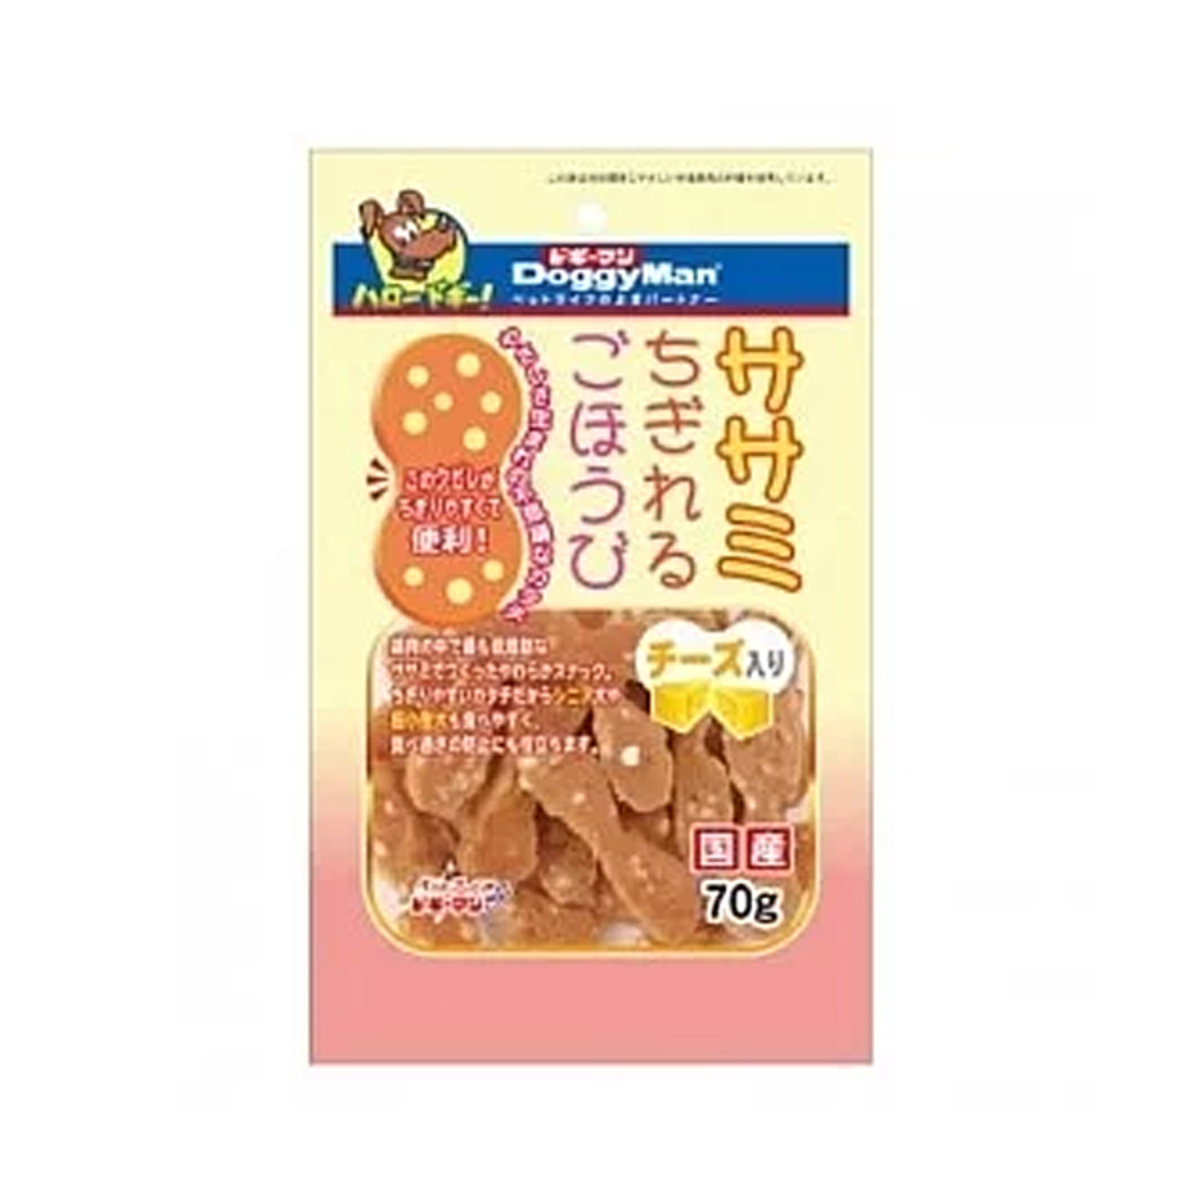 Cheese&Chicken Snack for Dog - 70g